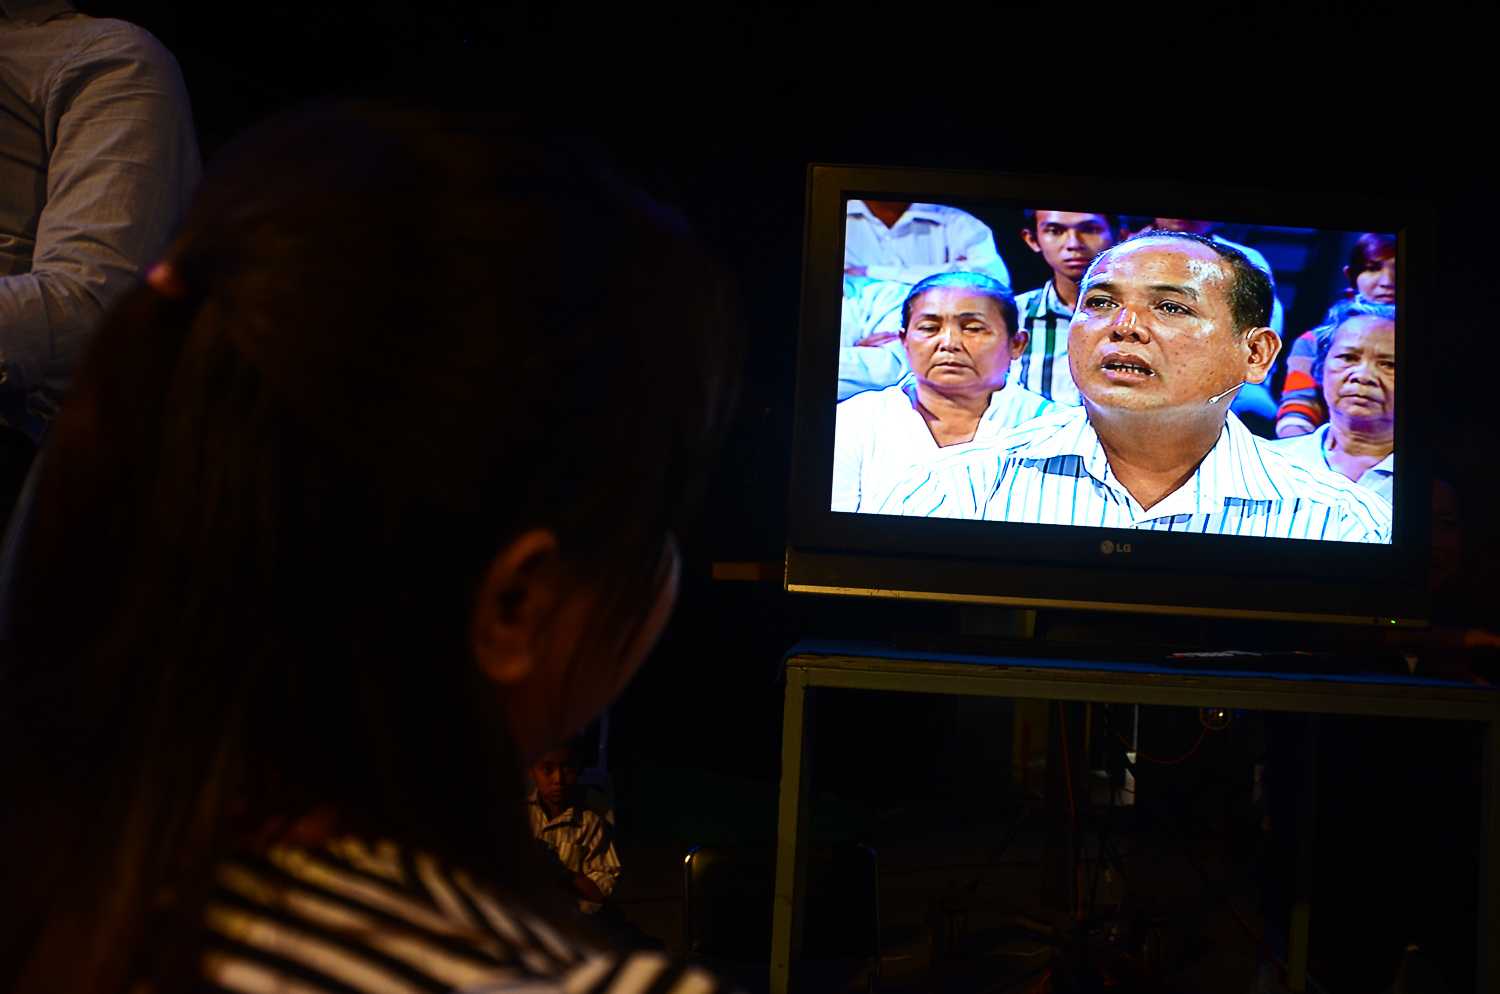 The show's producer Prak Sokhayouk, watches the screen as taping begins for 'It's Not a Dream'. Many of the staffmembers who work on the production are young and did not live through the Khmer Rouge regime.